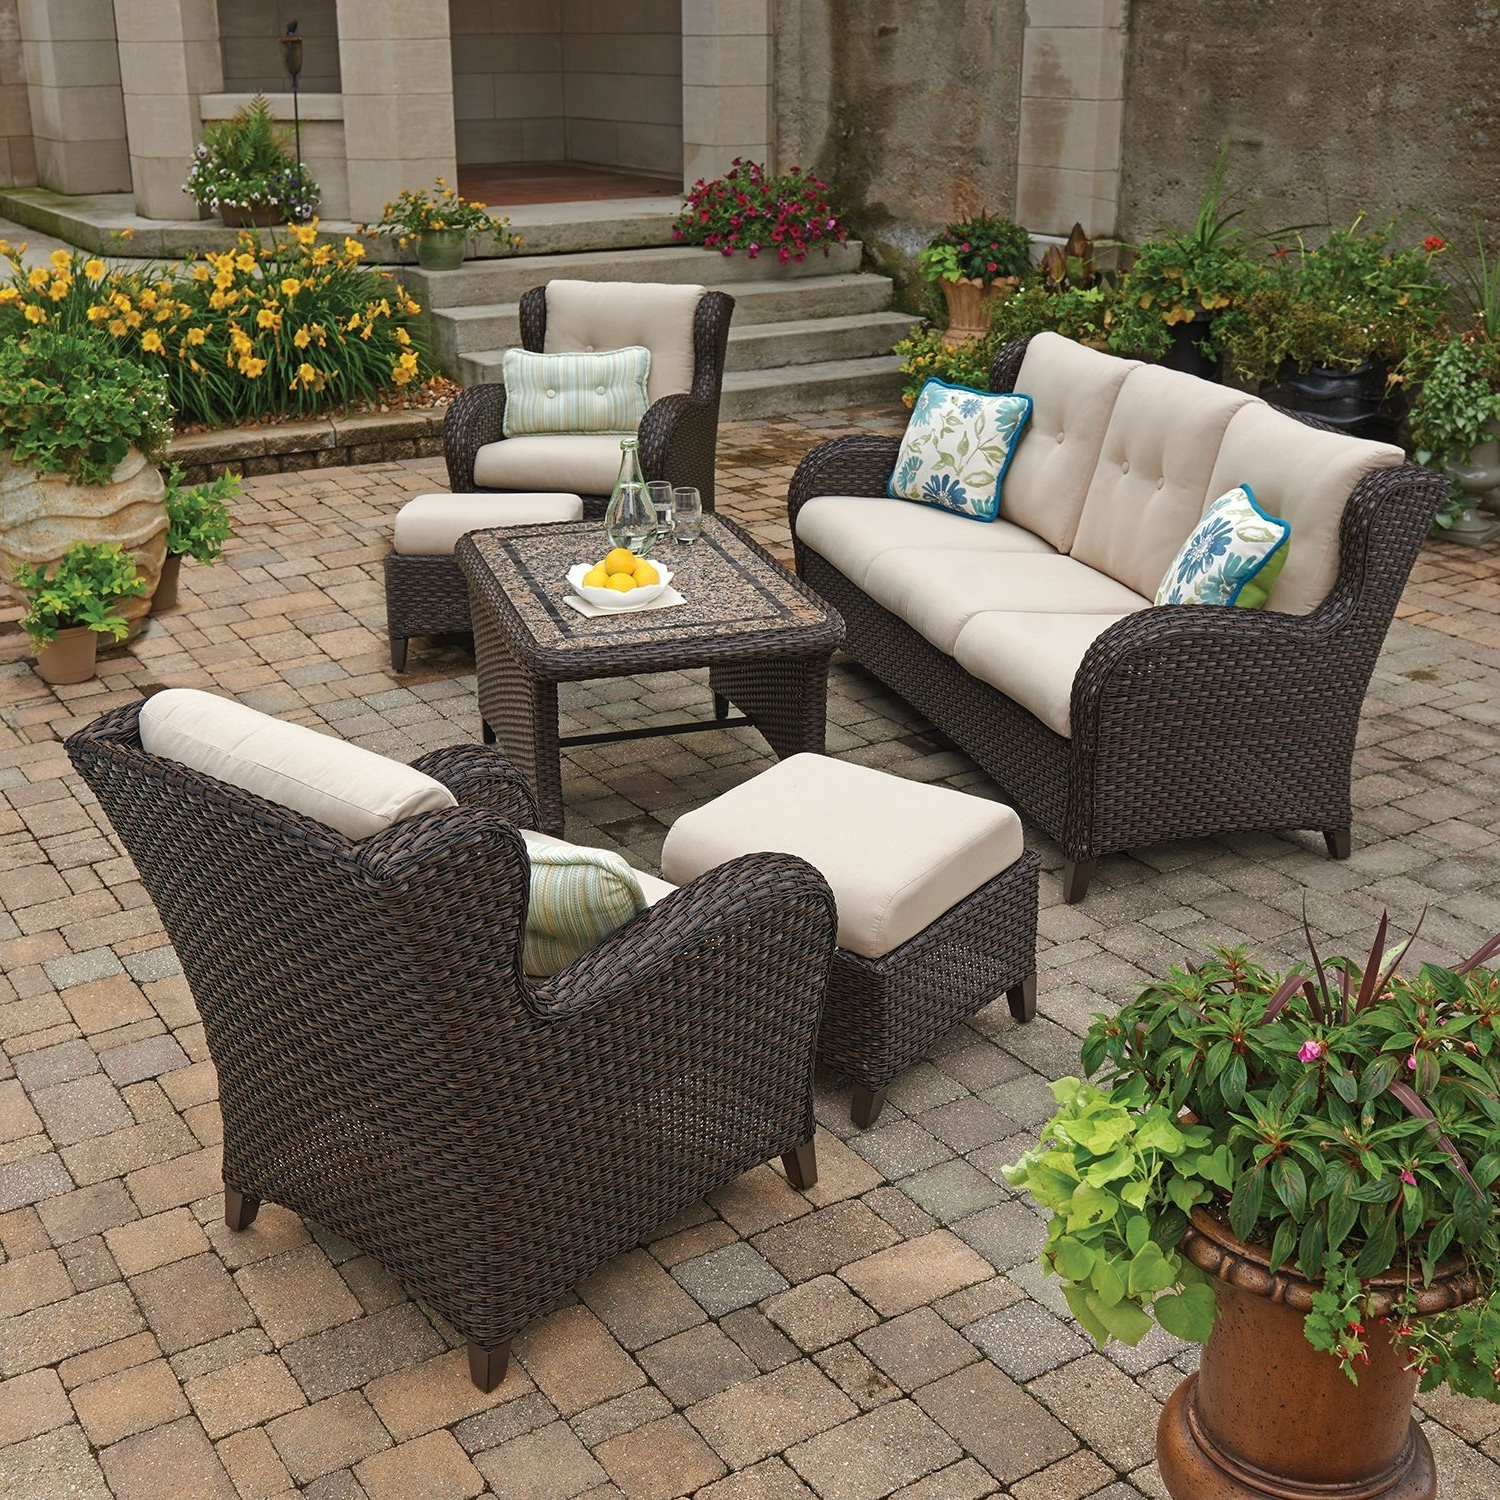 2019 Patio Conversation Sets At Sam's Club Inside Member's Mark Heritage 6 Piece Deep Seating Set With Premium (View 5 of 20)